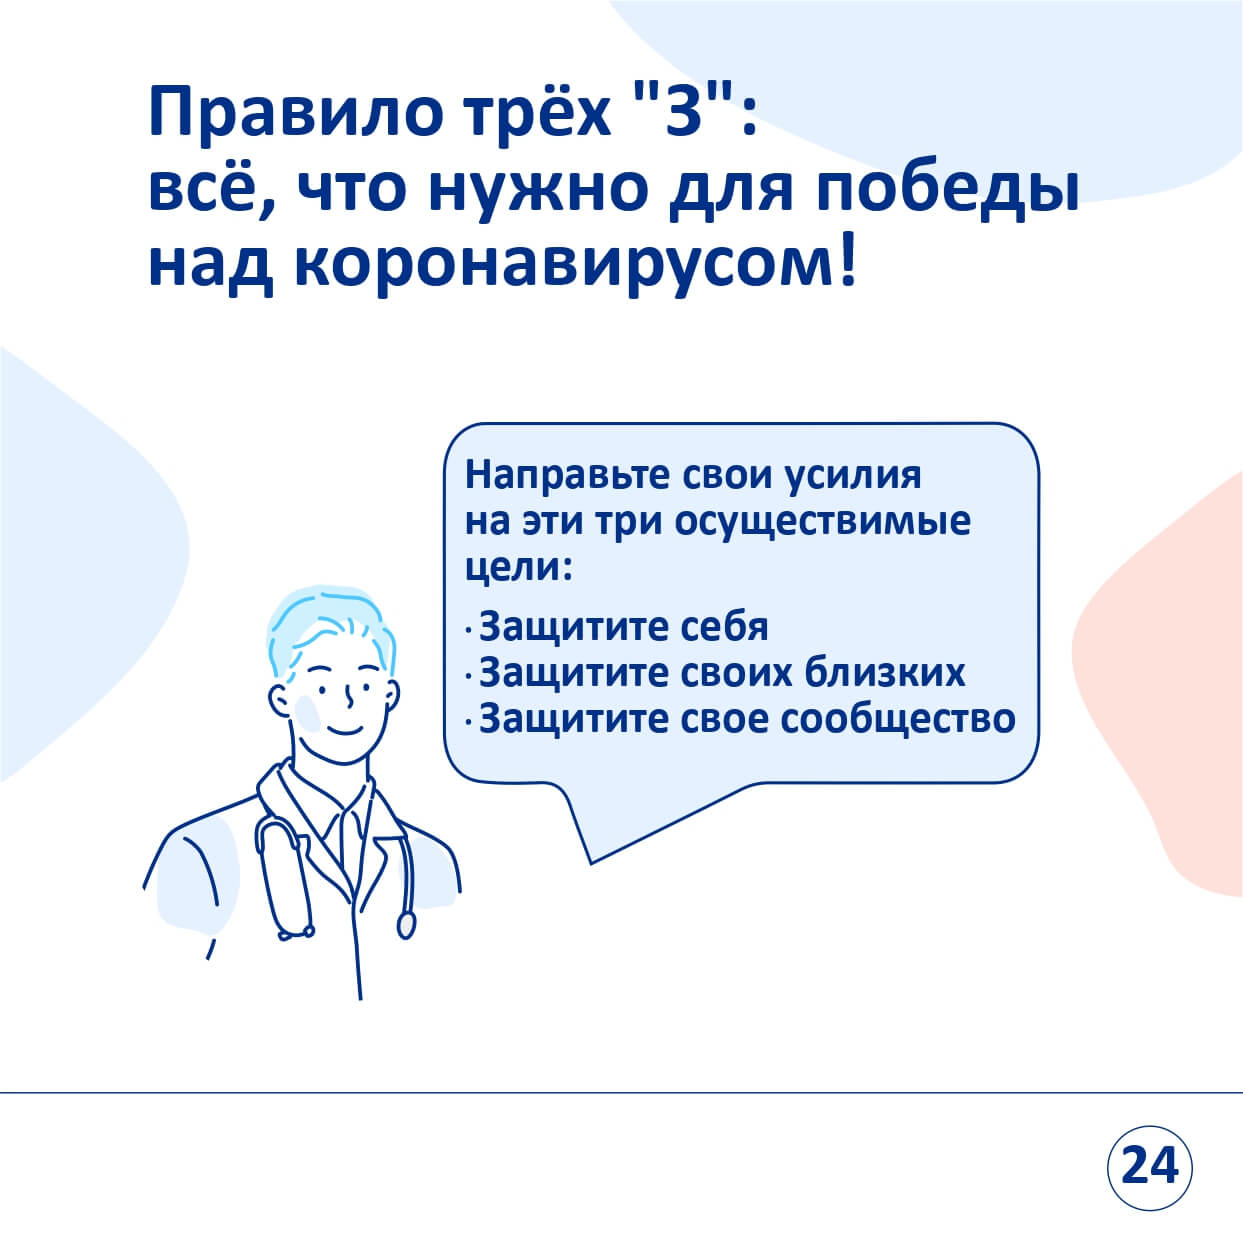 21_page-0025